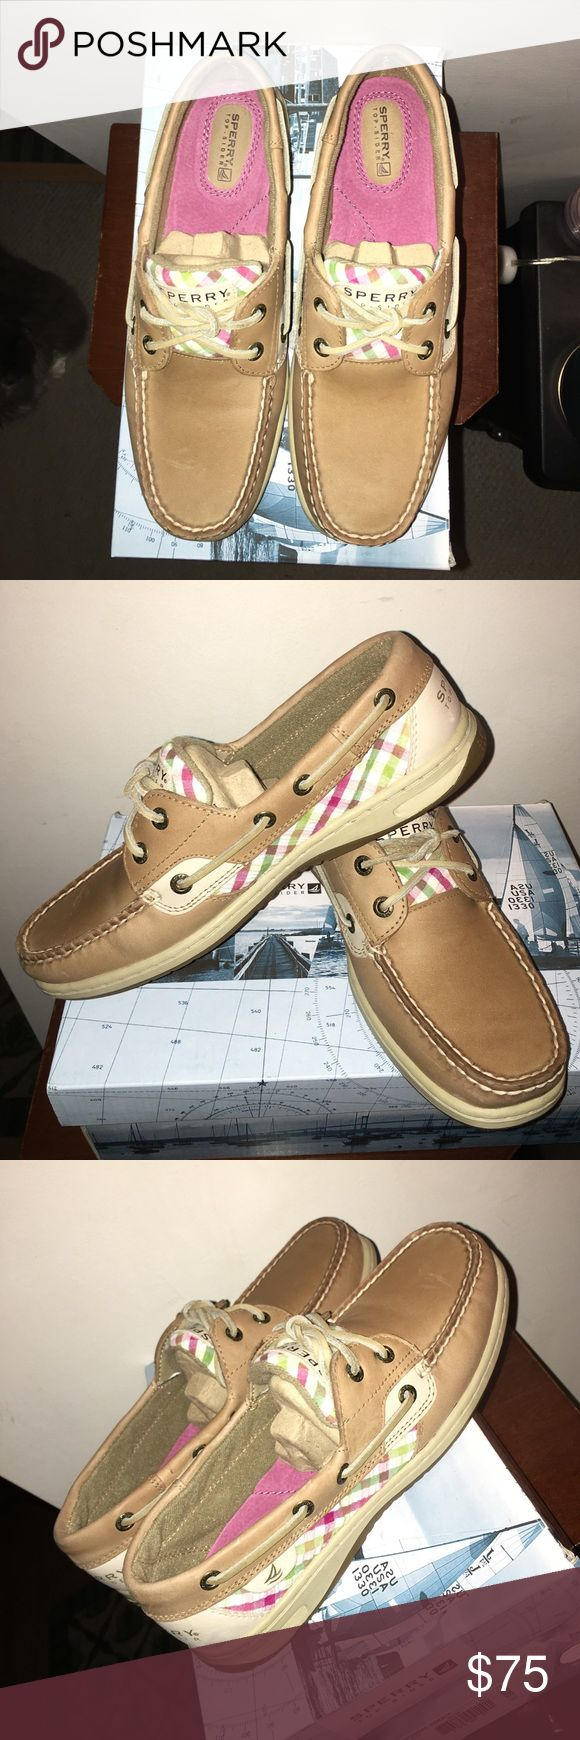 25% off Bundles NWT  Sperry Topsider  Bluefish Linen leather with hot pink and green check accents on sides and tongue. Pink cushy suede footbed. Brand new. Never worn. Awesome shoes, just too small for me. Will be shipped in shoe box with original packaging. Smoke free. Bundle for additional discounts.  Sperry Top-Sider Shoes Flats & Loafers